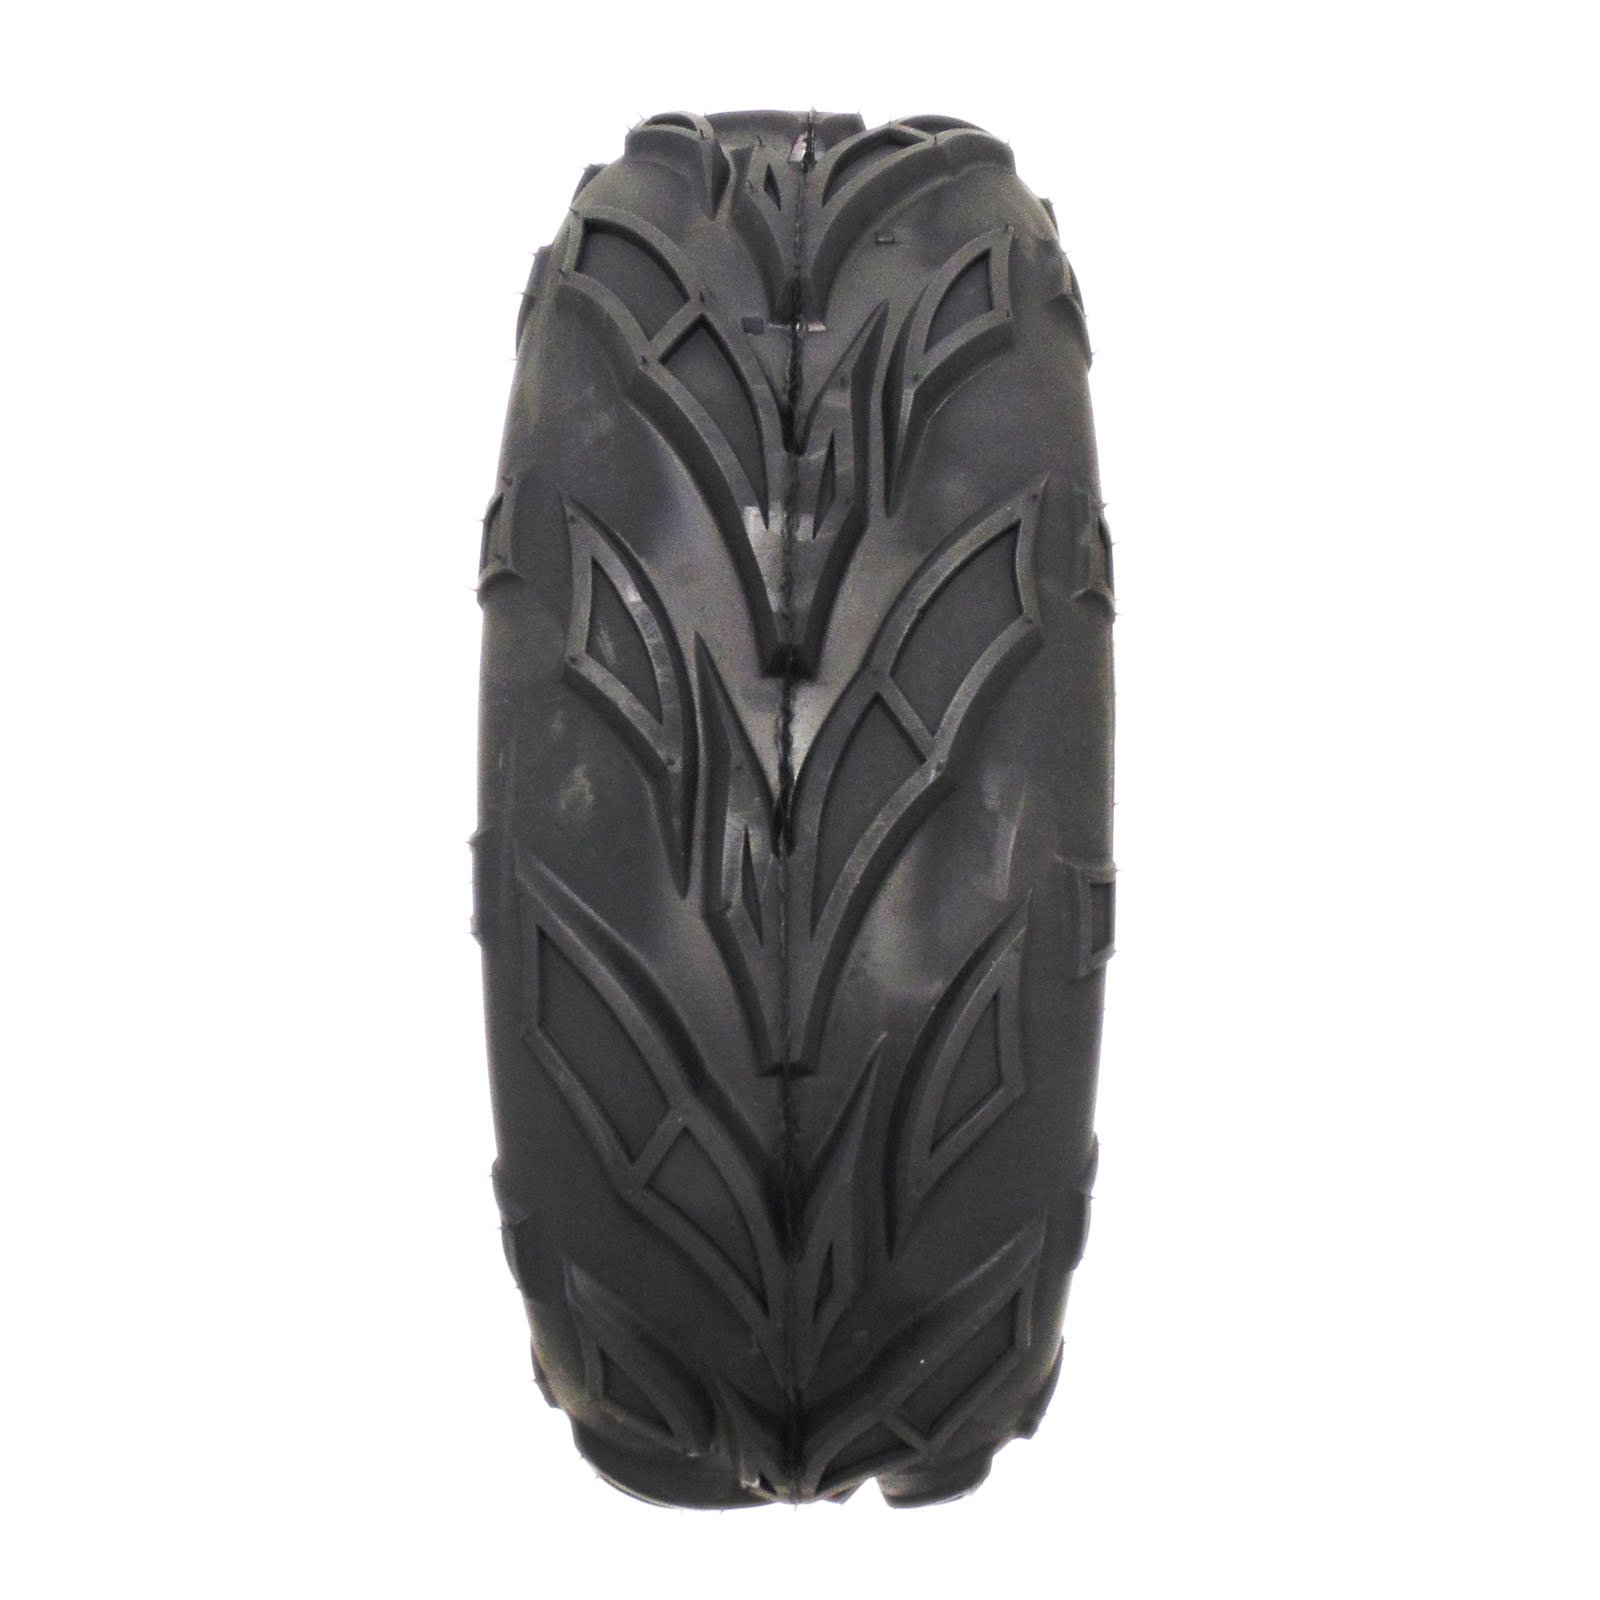 SET OF TWO: ATV Tubeless Tire 21x7-10 (175/80-10) Front or Rear All Terrain ATV UTV Go Kart - P133 by MMG (Image #3)